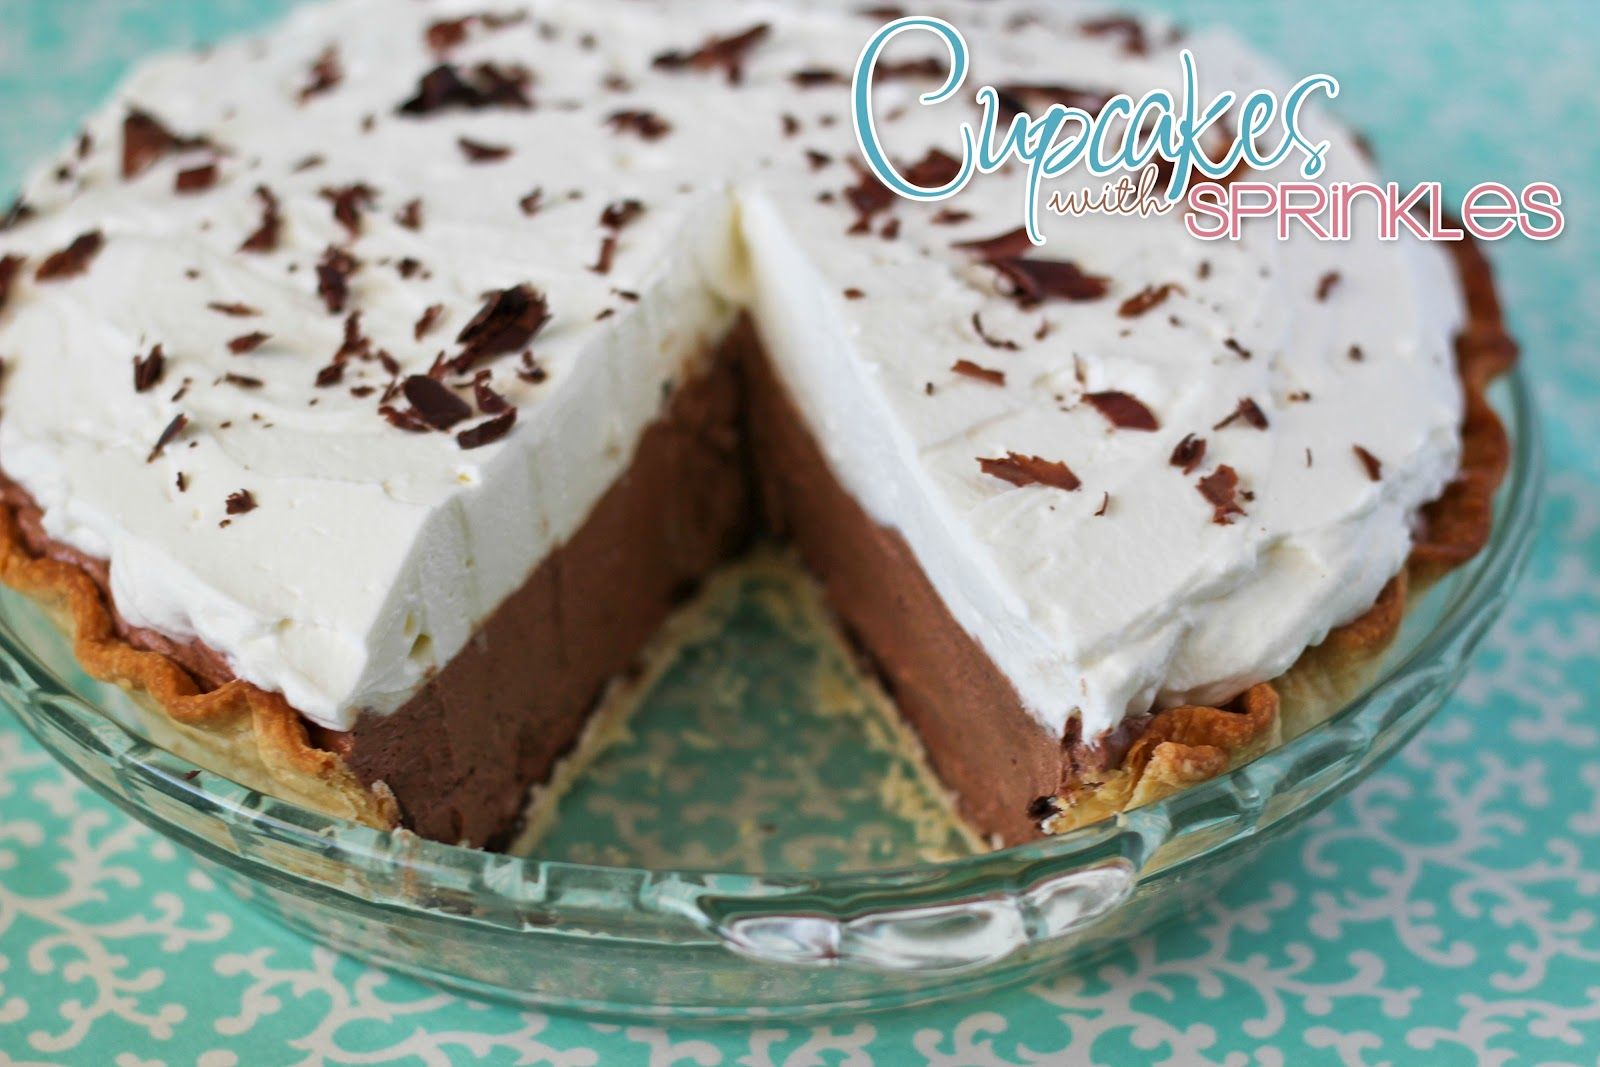 Cupcakes with Sprinkles: Chocolate Mousse Pie